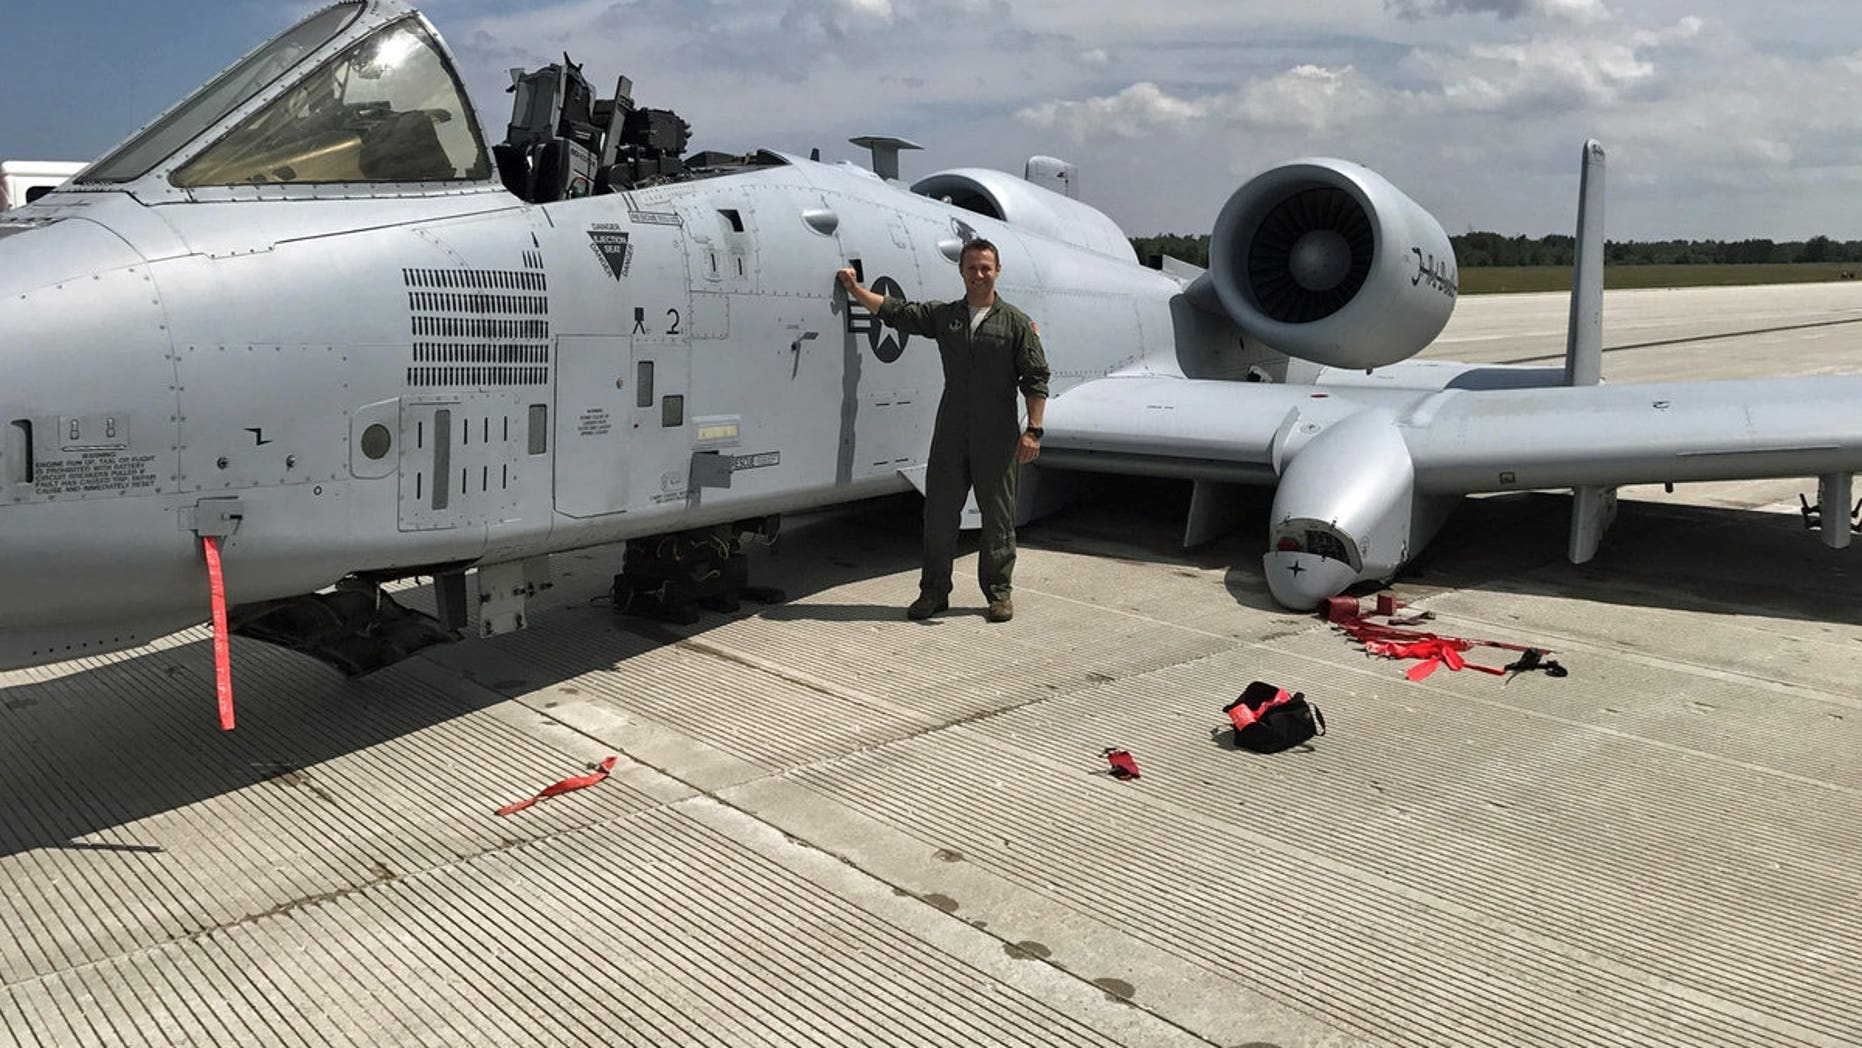 Capt. Brett DeVries, an A-10 Thunderbolt II pilot of the 107th Fighter Squadron from Selfridge Air National Guard Base in Michigan, was forced to make an emergency landing on July 20 after a malfunction.